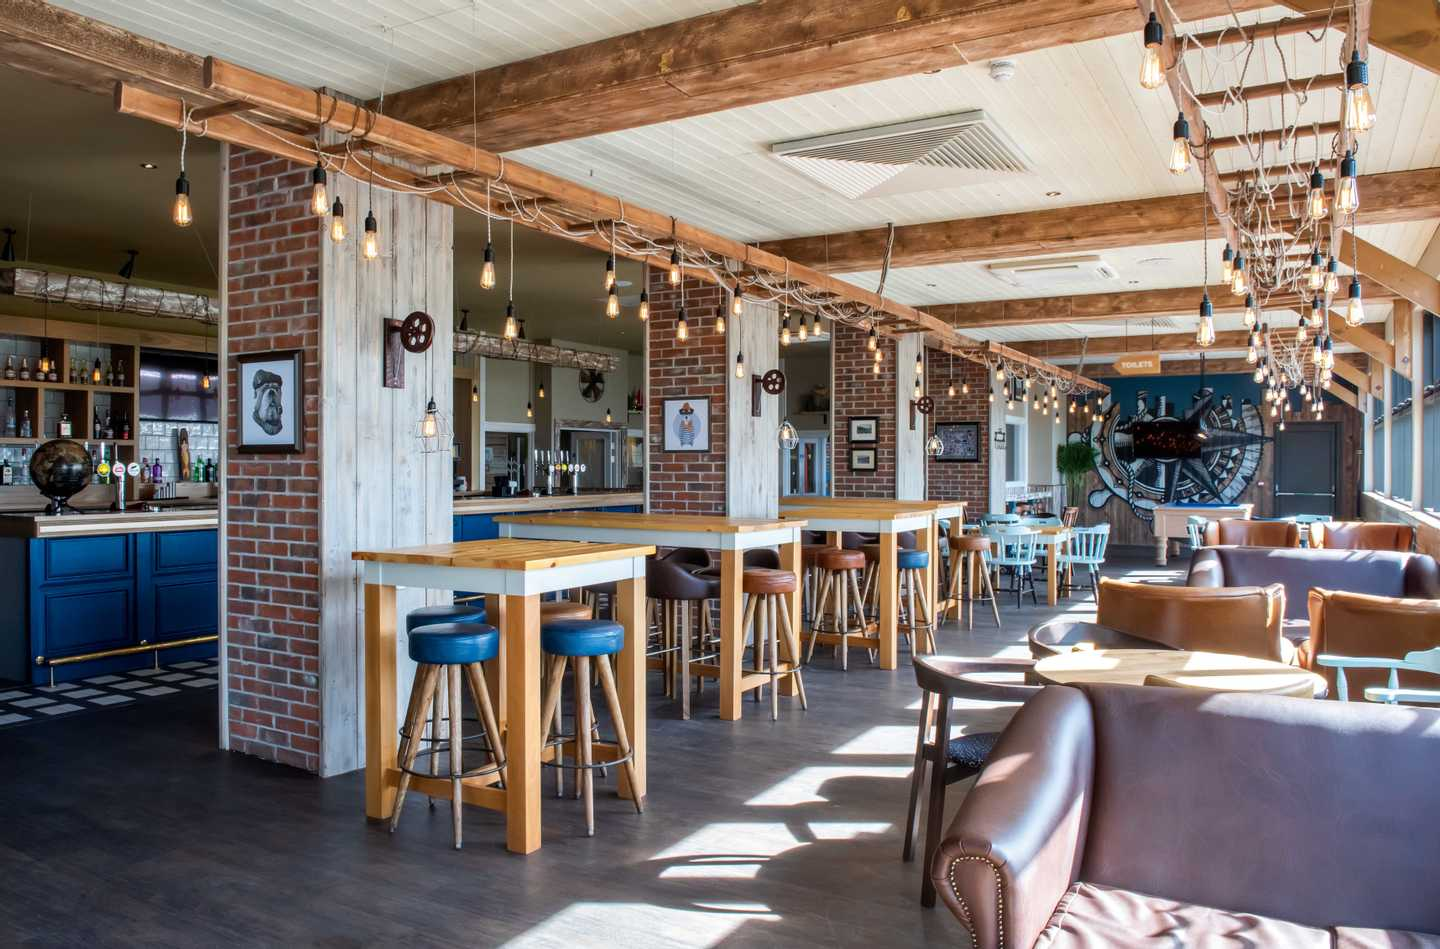 NEW - HMS Glendower Pub